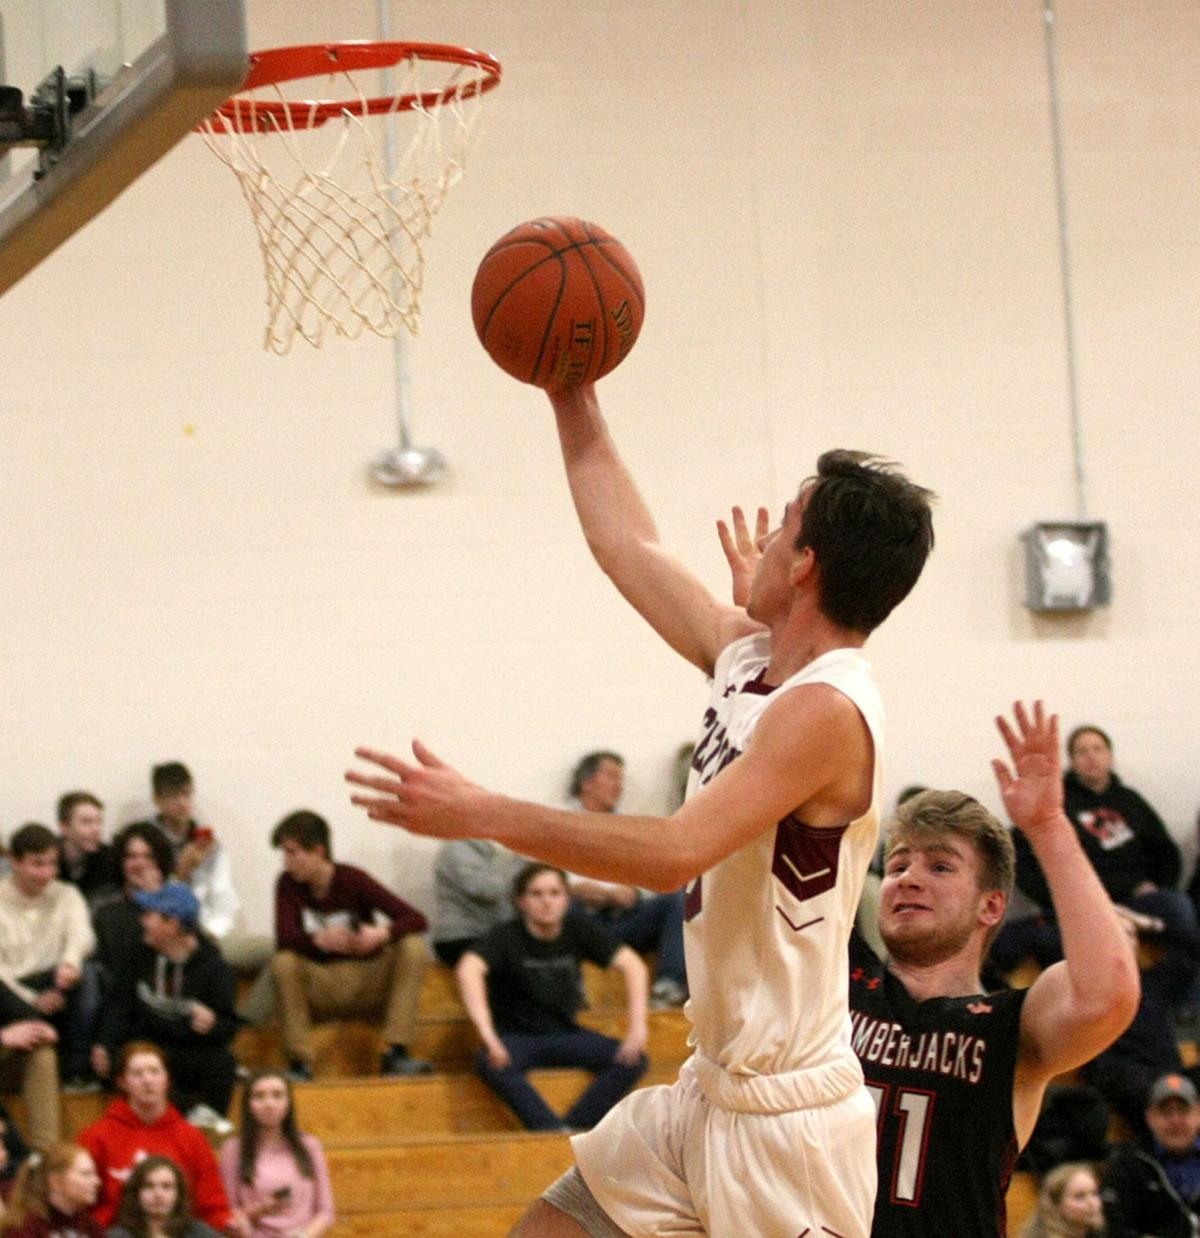 Chateaugay's McDonald sets Section 10 scoring record in victory